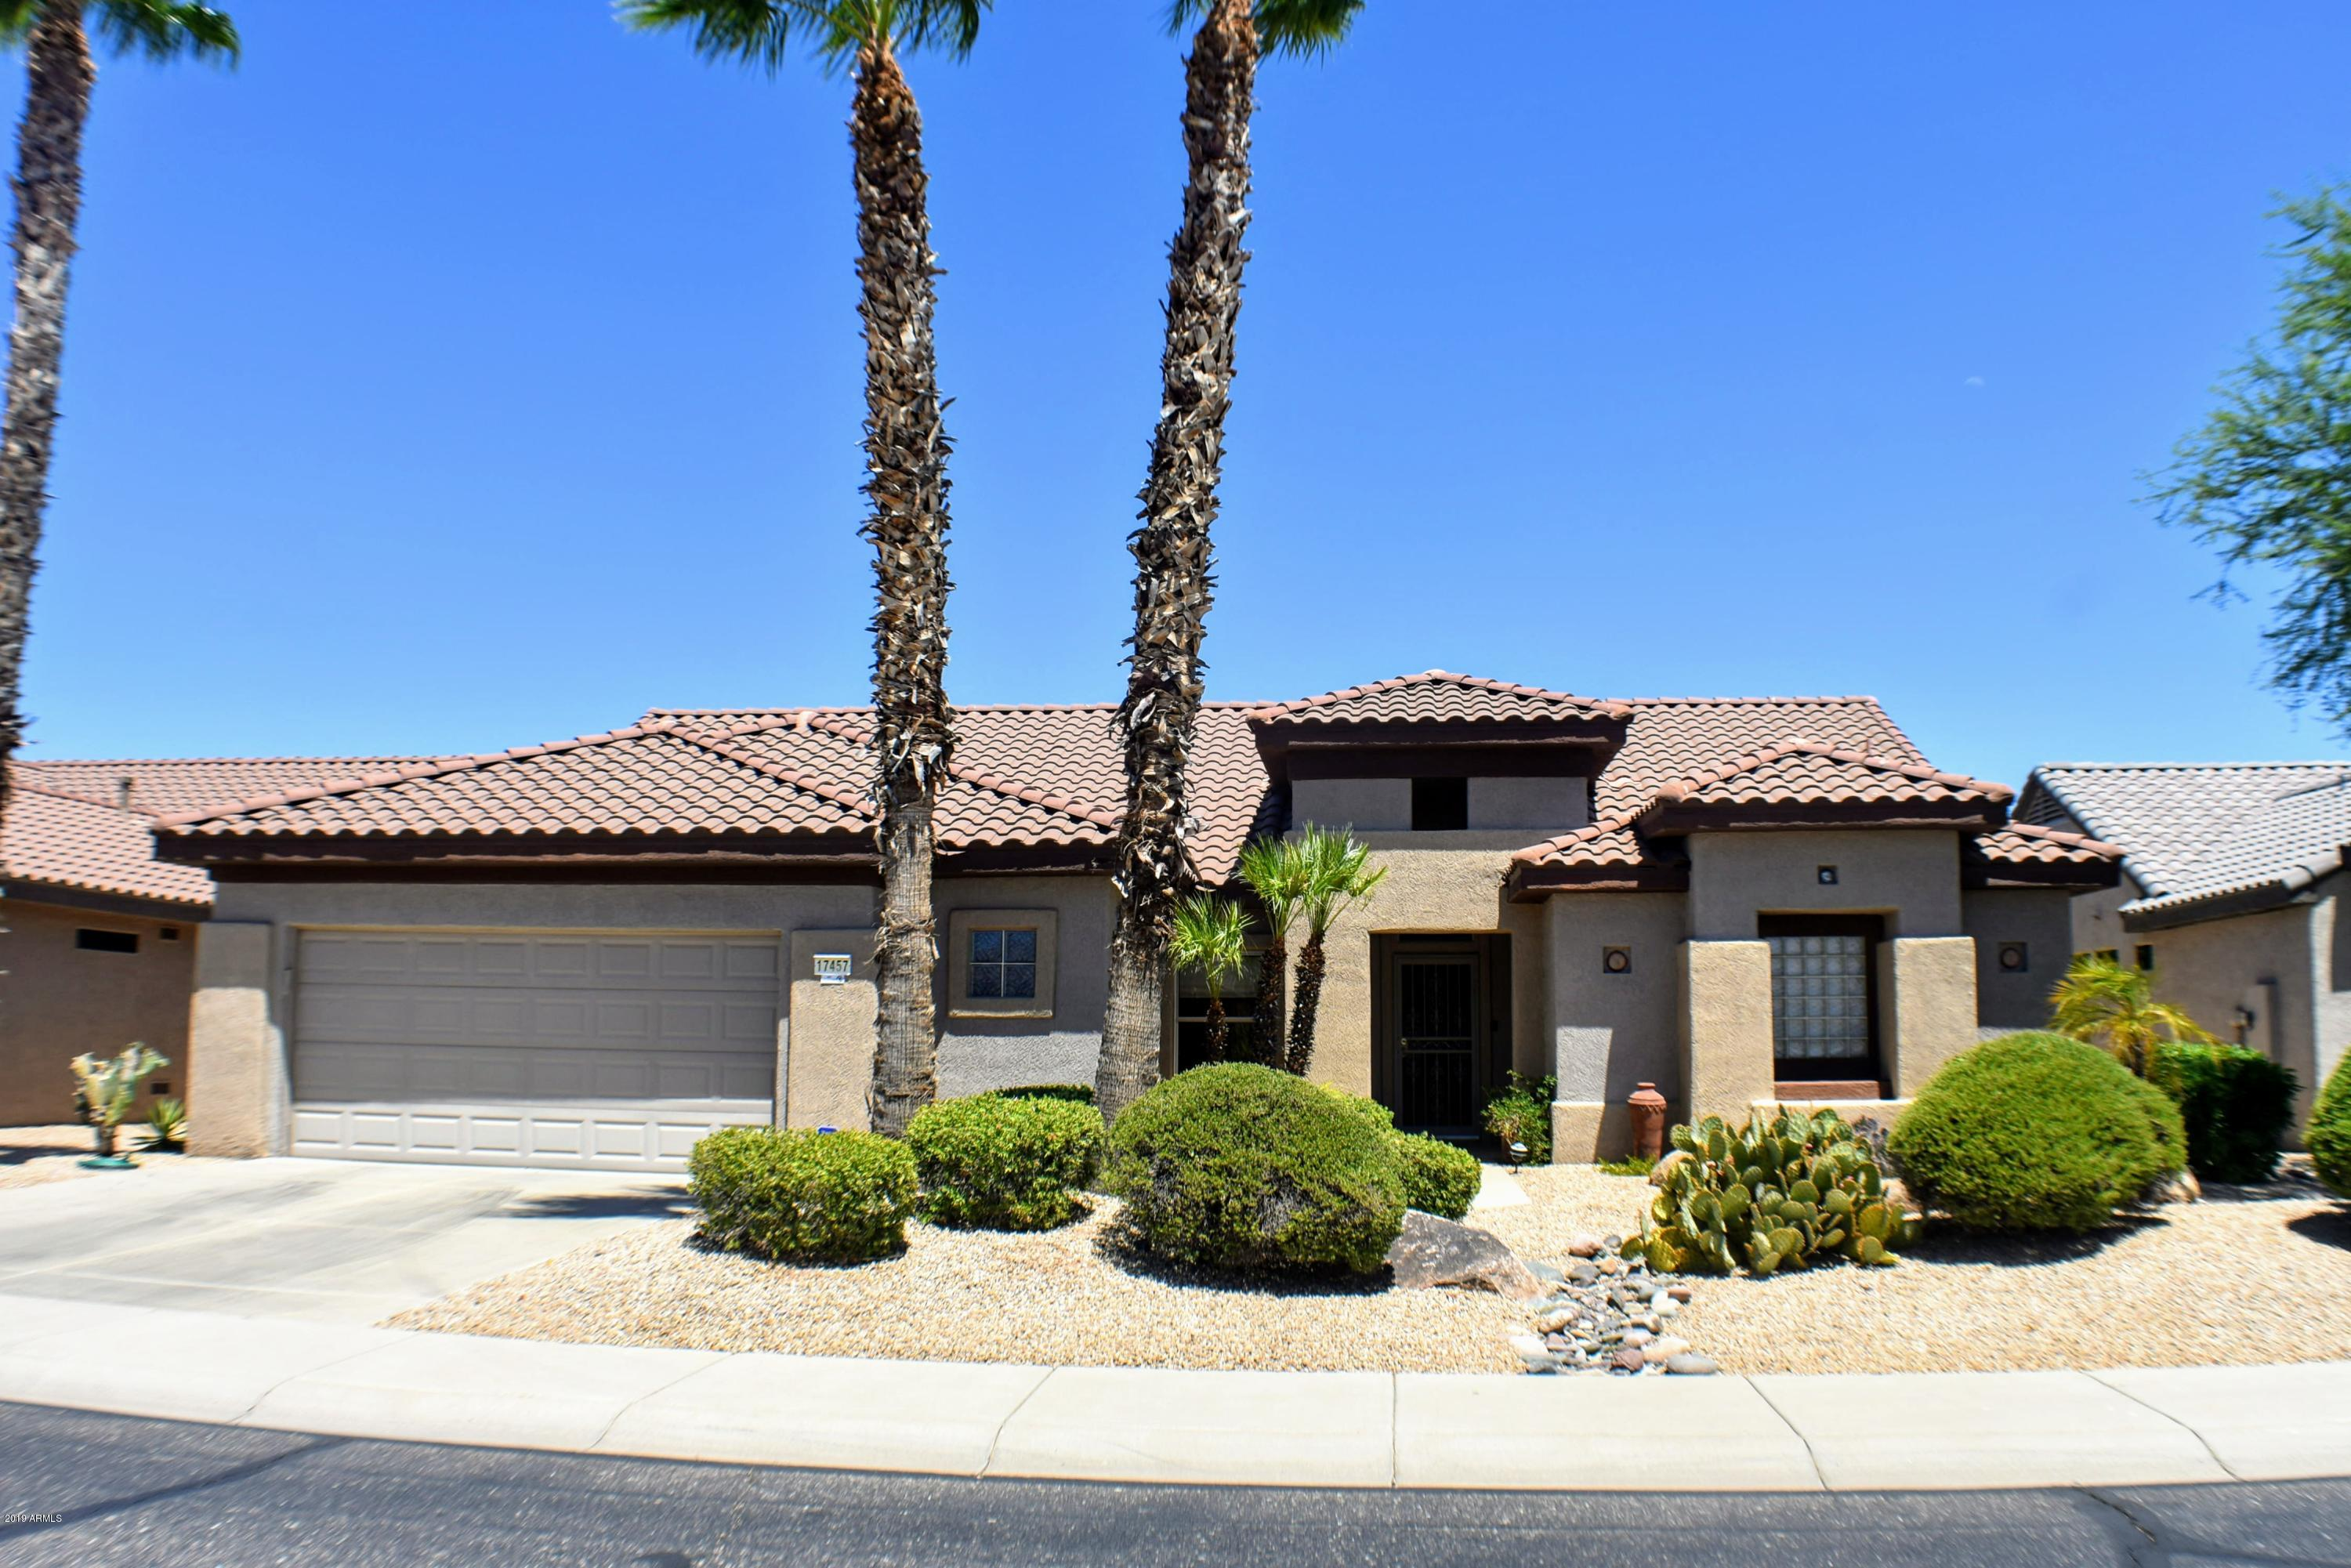 17457 N ESTRELLA VISTA Drive, Surprise, Arizona